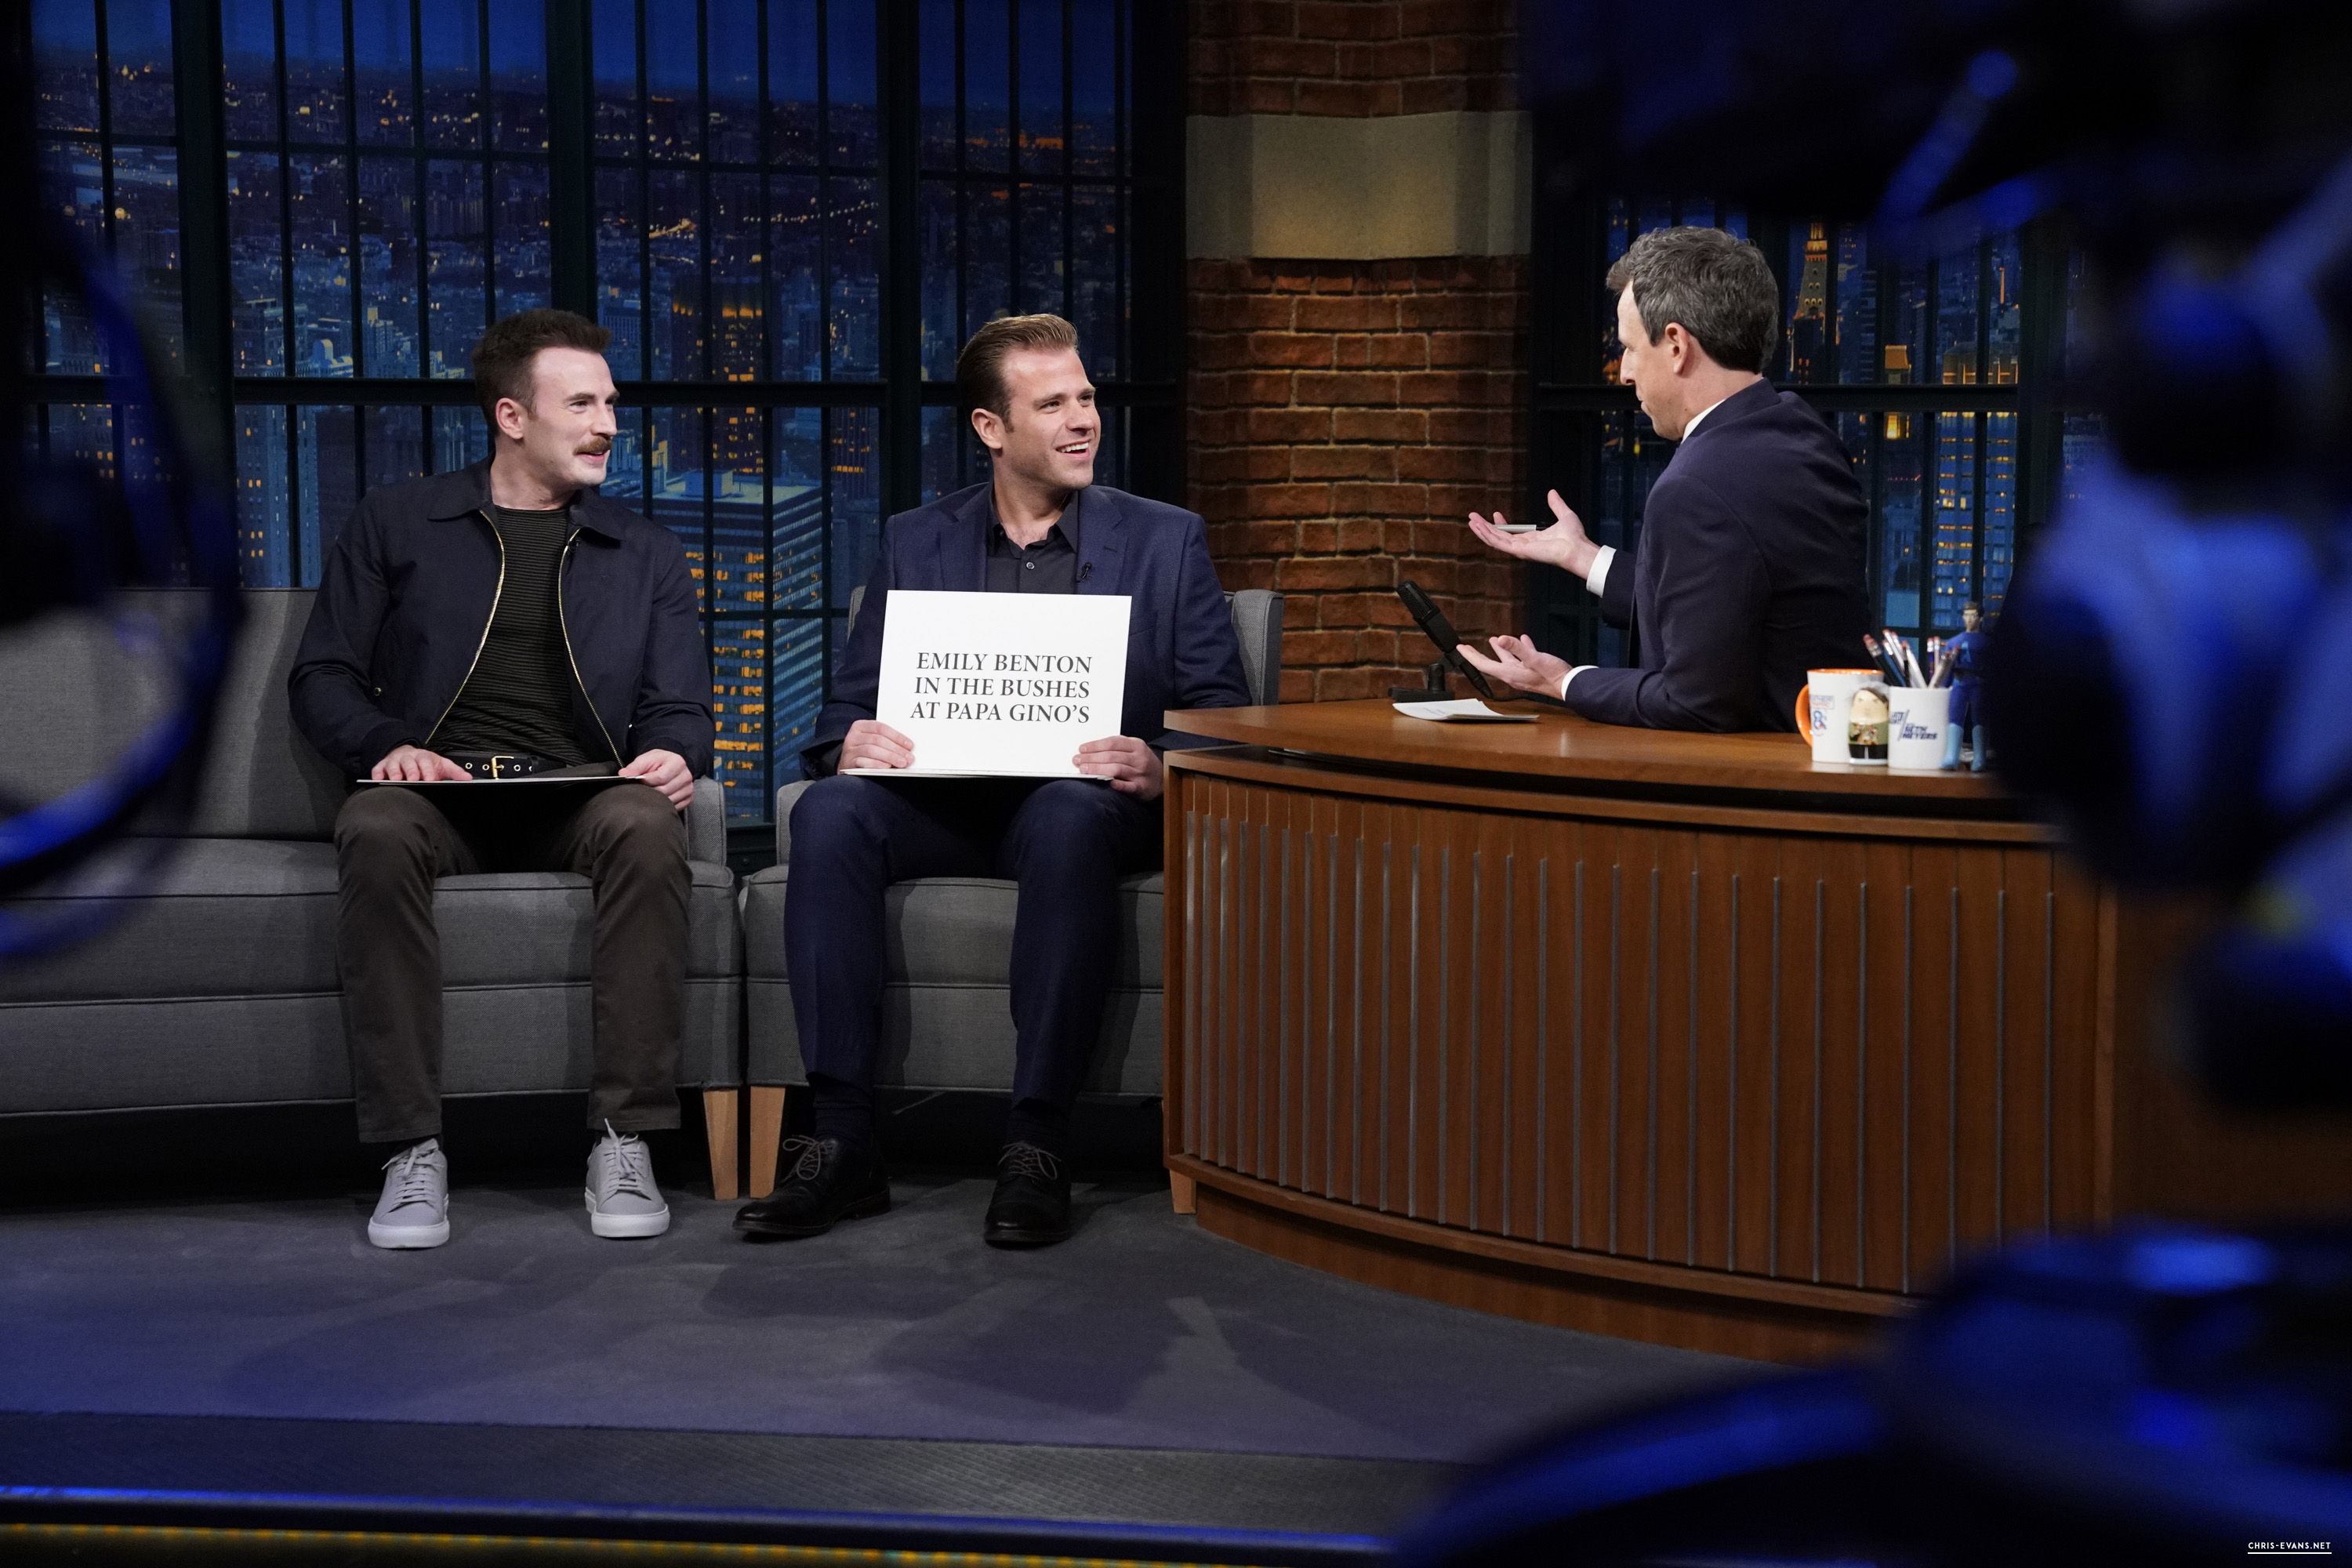 http://chris-evans.net/photos/albums/Appearances/2018/04%2023%20Late%20Night%20with%20Seth%20Meyers/009.jpg